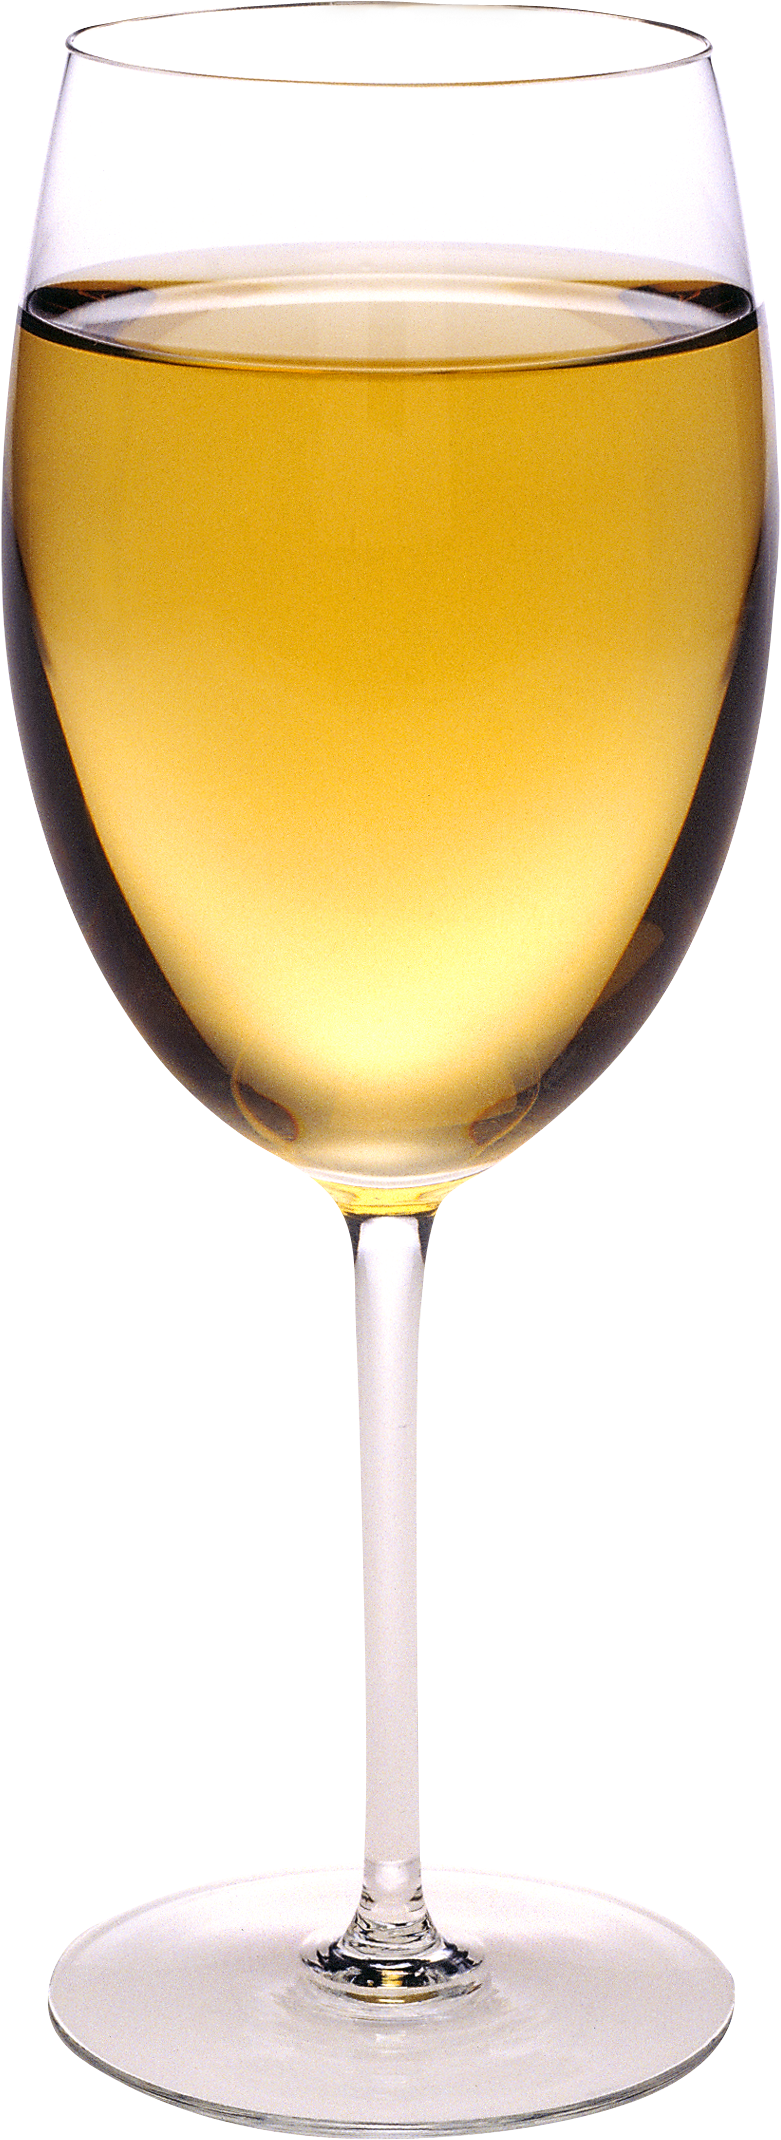 Glass PNG images, free wineglass PNG pictures.